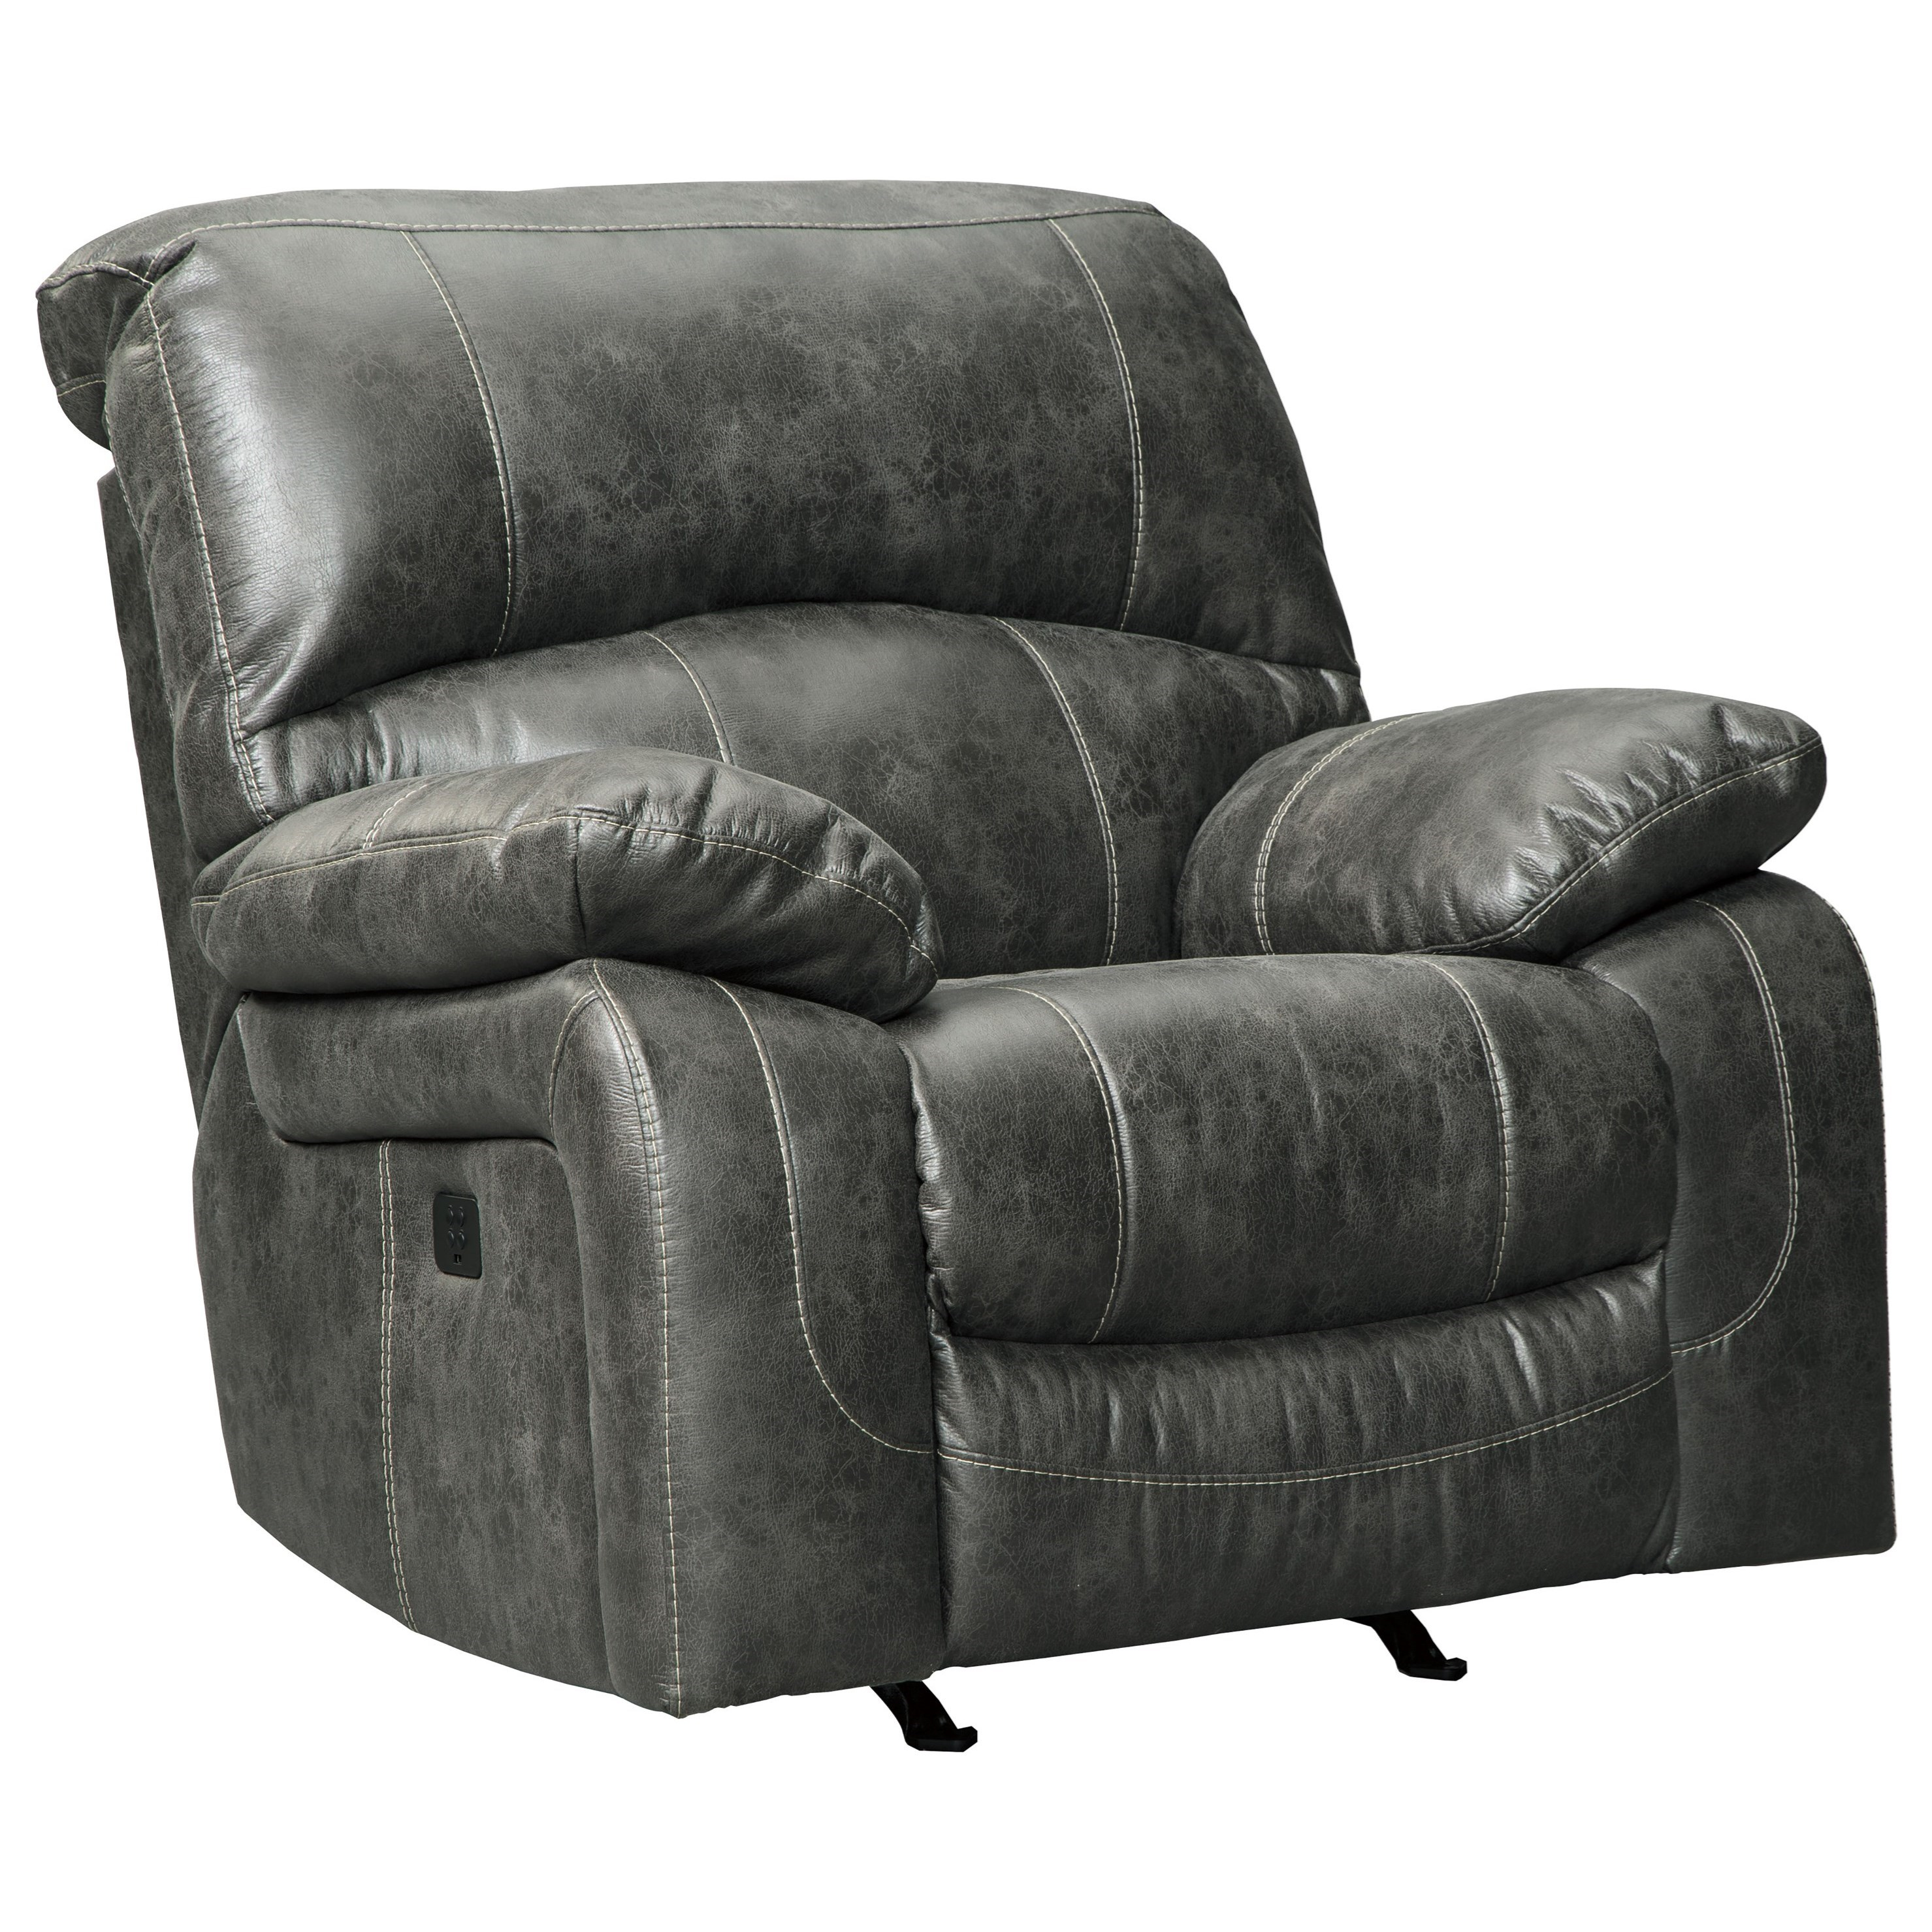 Dunwell Power Rocker Recliner w/ Adjustable Headrest by Signature Design by Ashley at Factory Direct Furniture